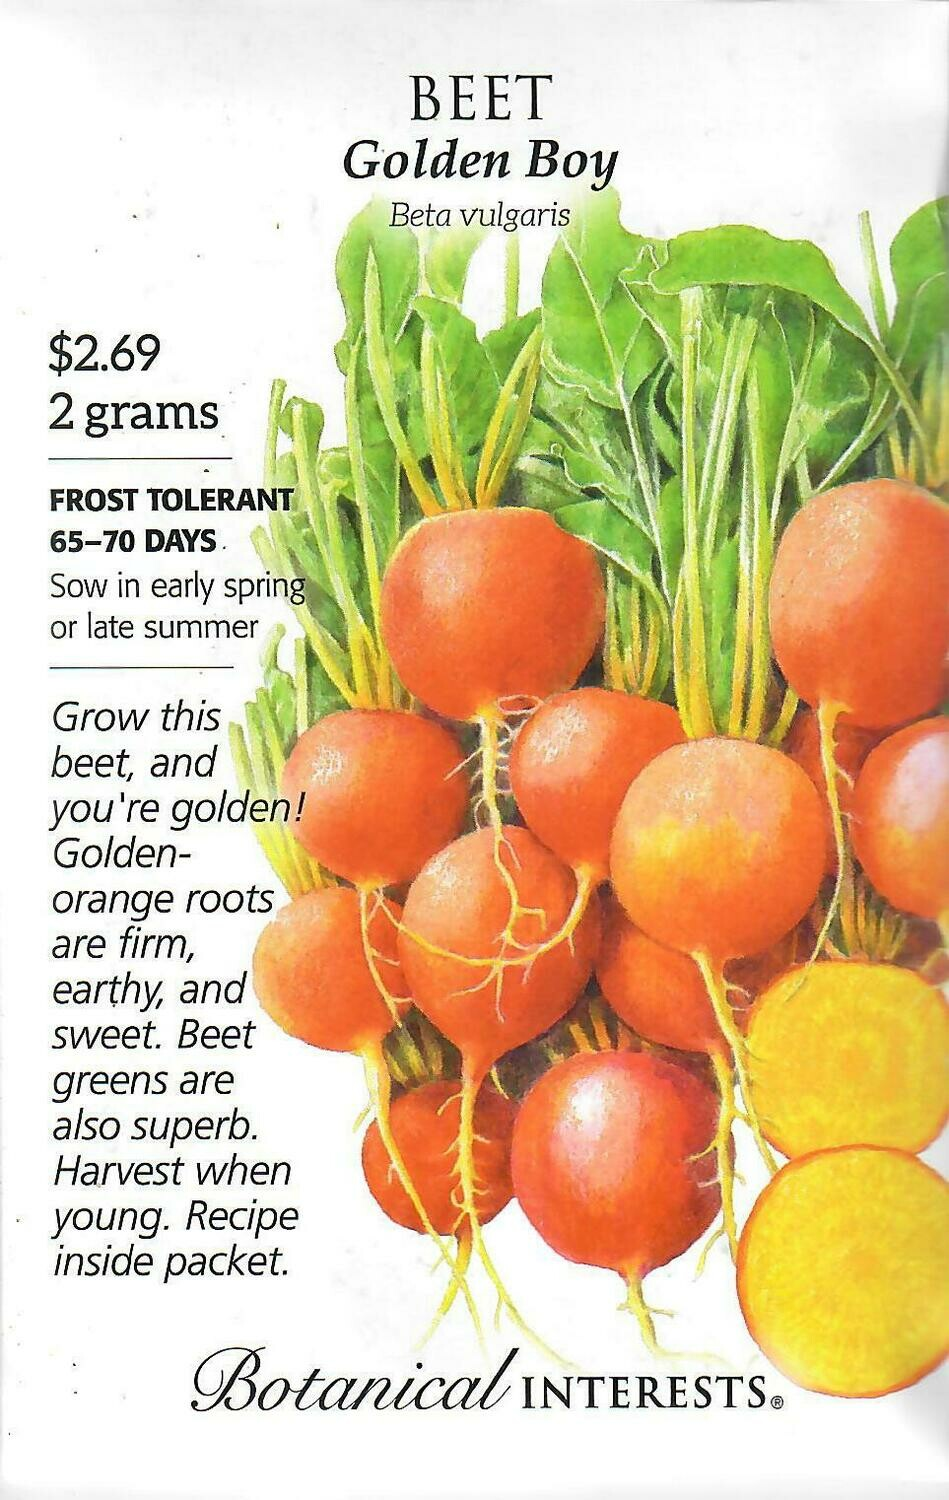 Beet (gold) Golden Boy Botanical Interests